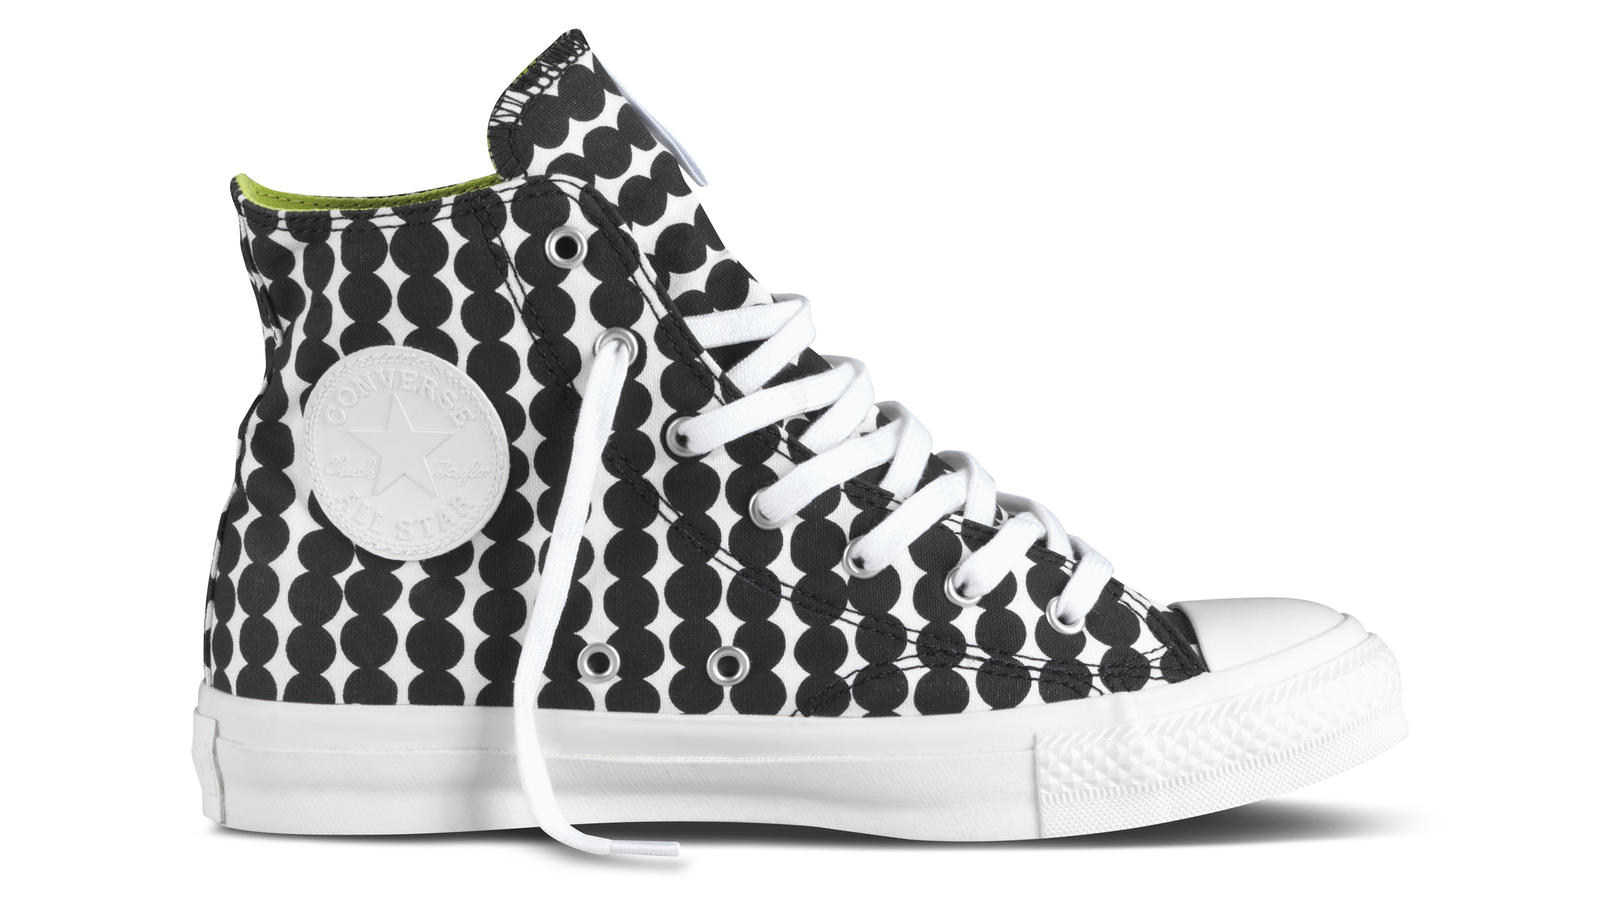 Converse Launches Its SpringSummer 2013 Jack Purcell